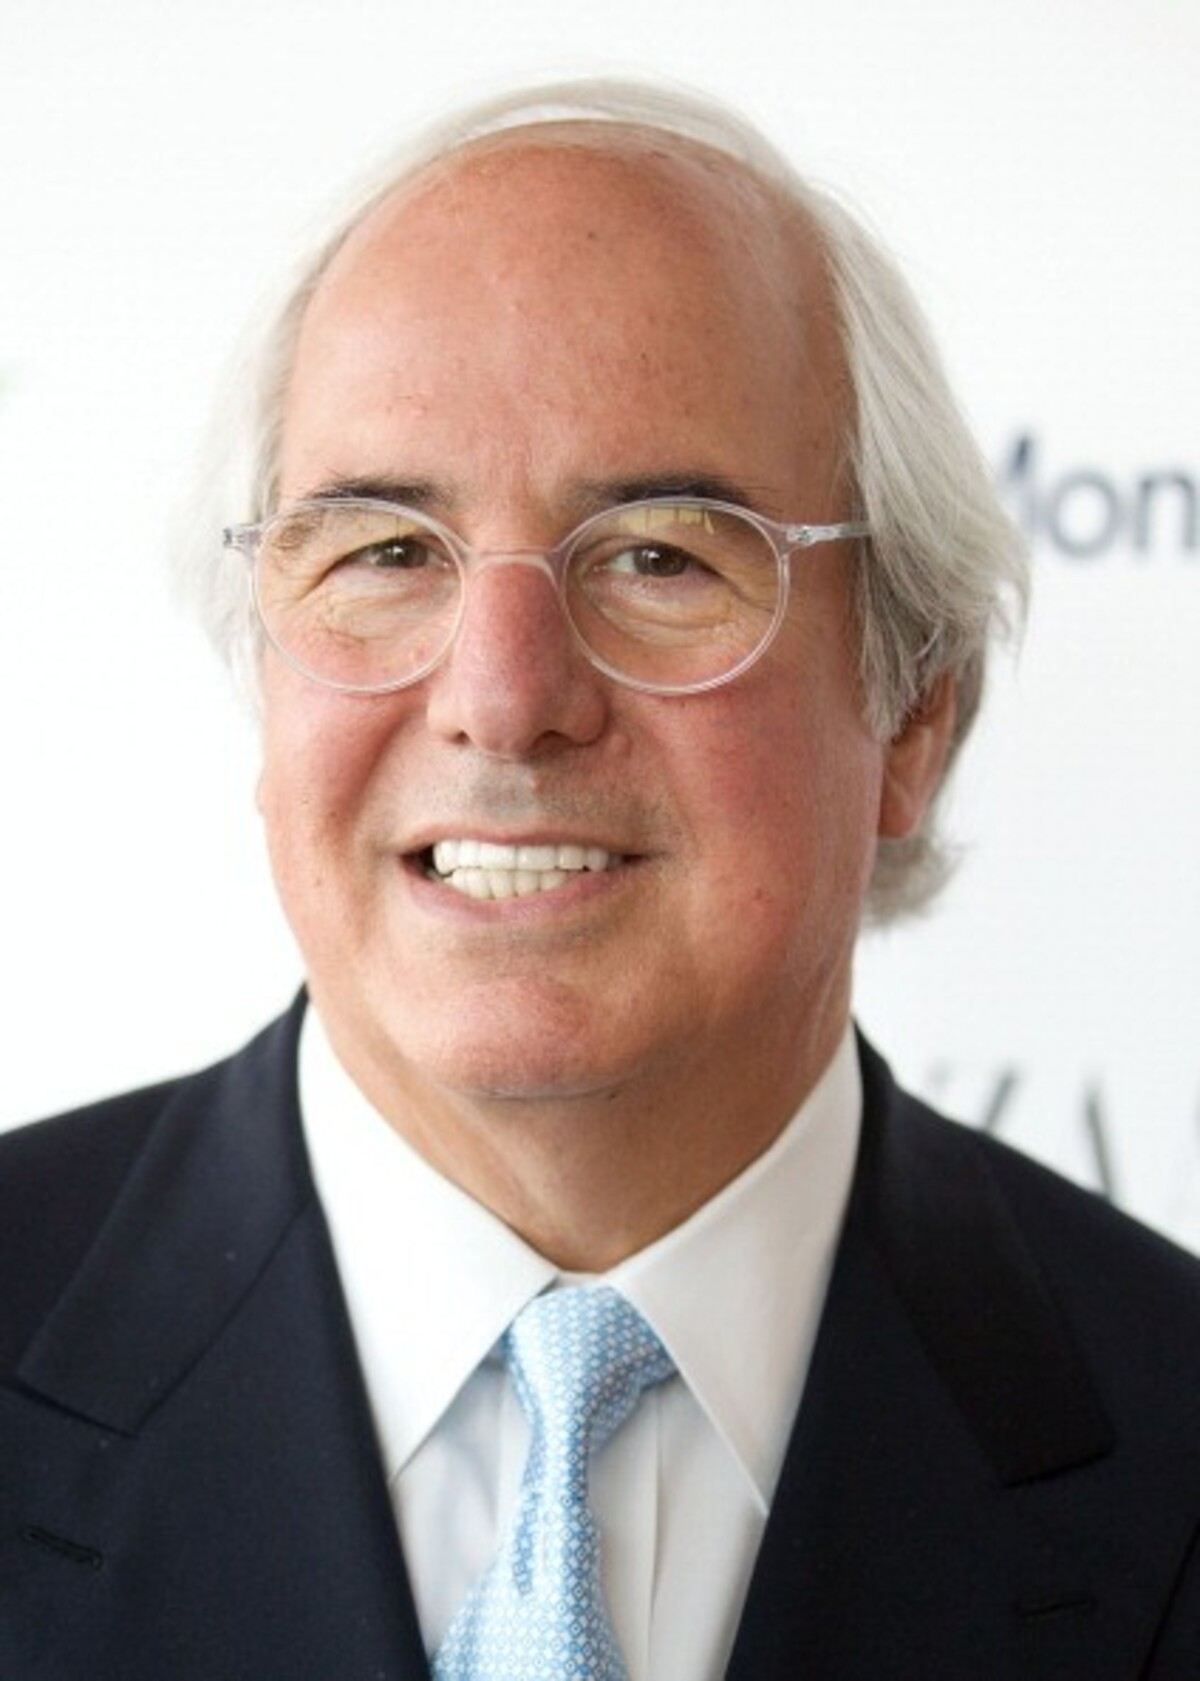 did frank abagnale jr marry brenda